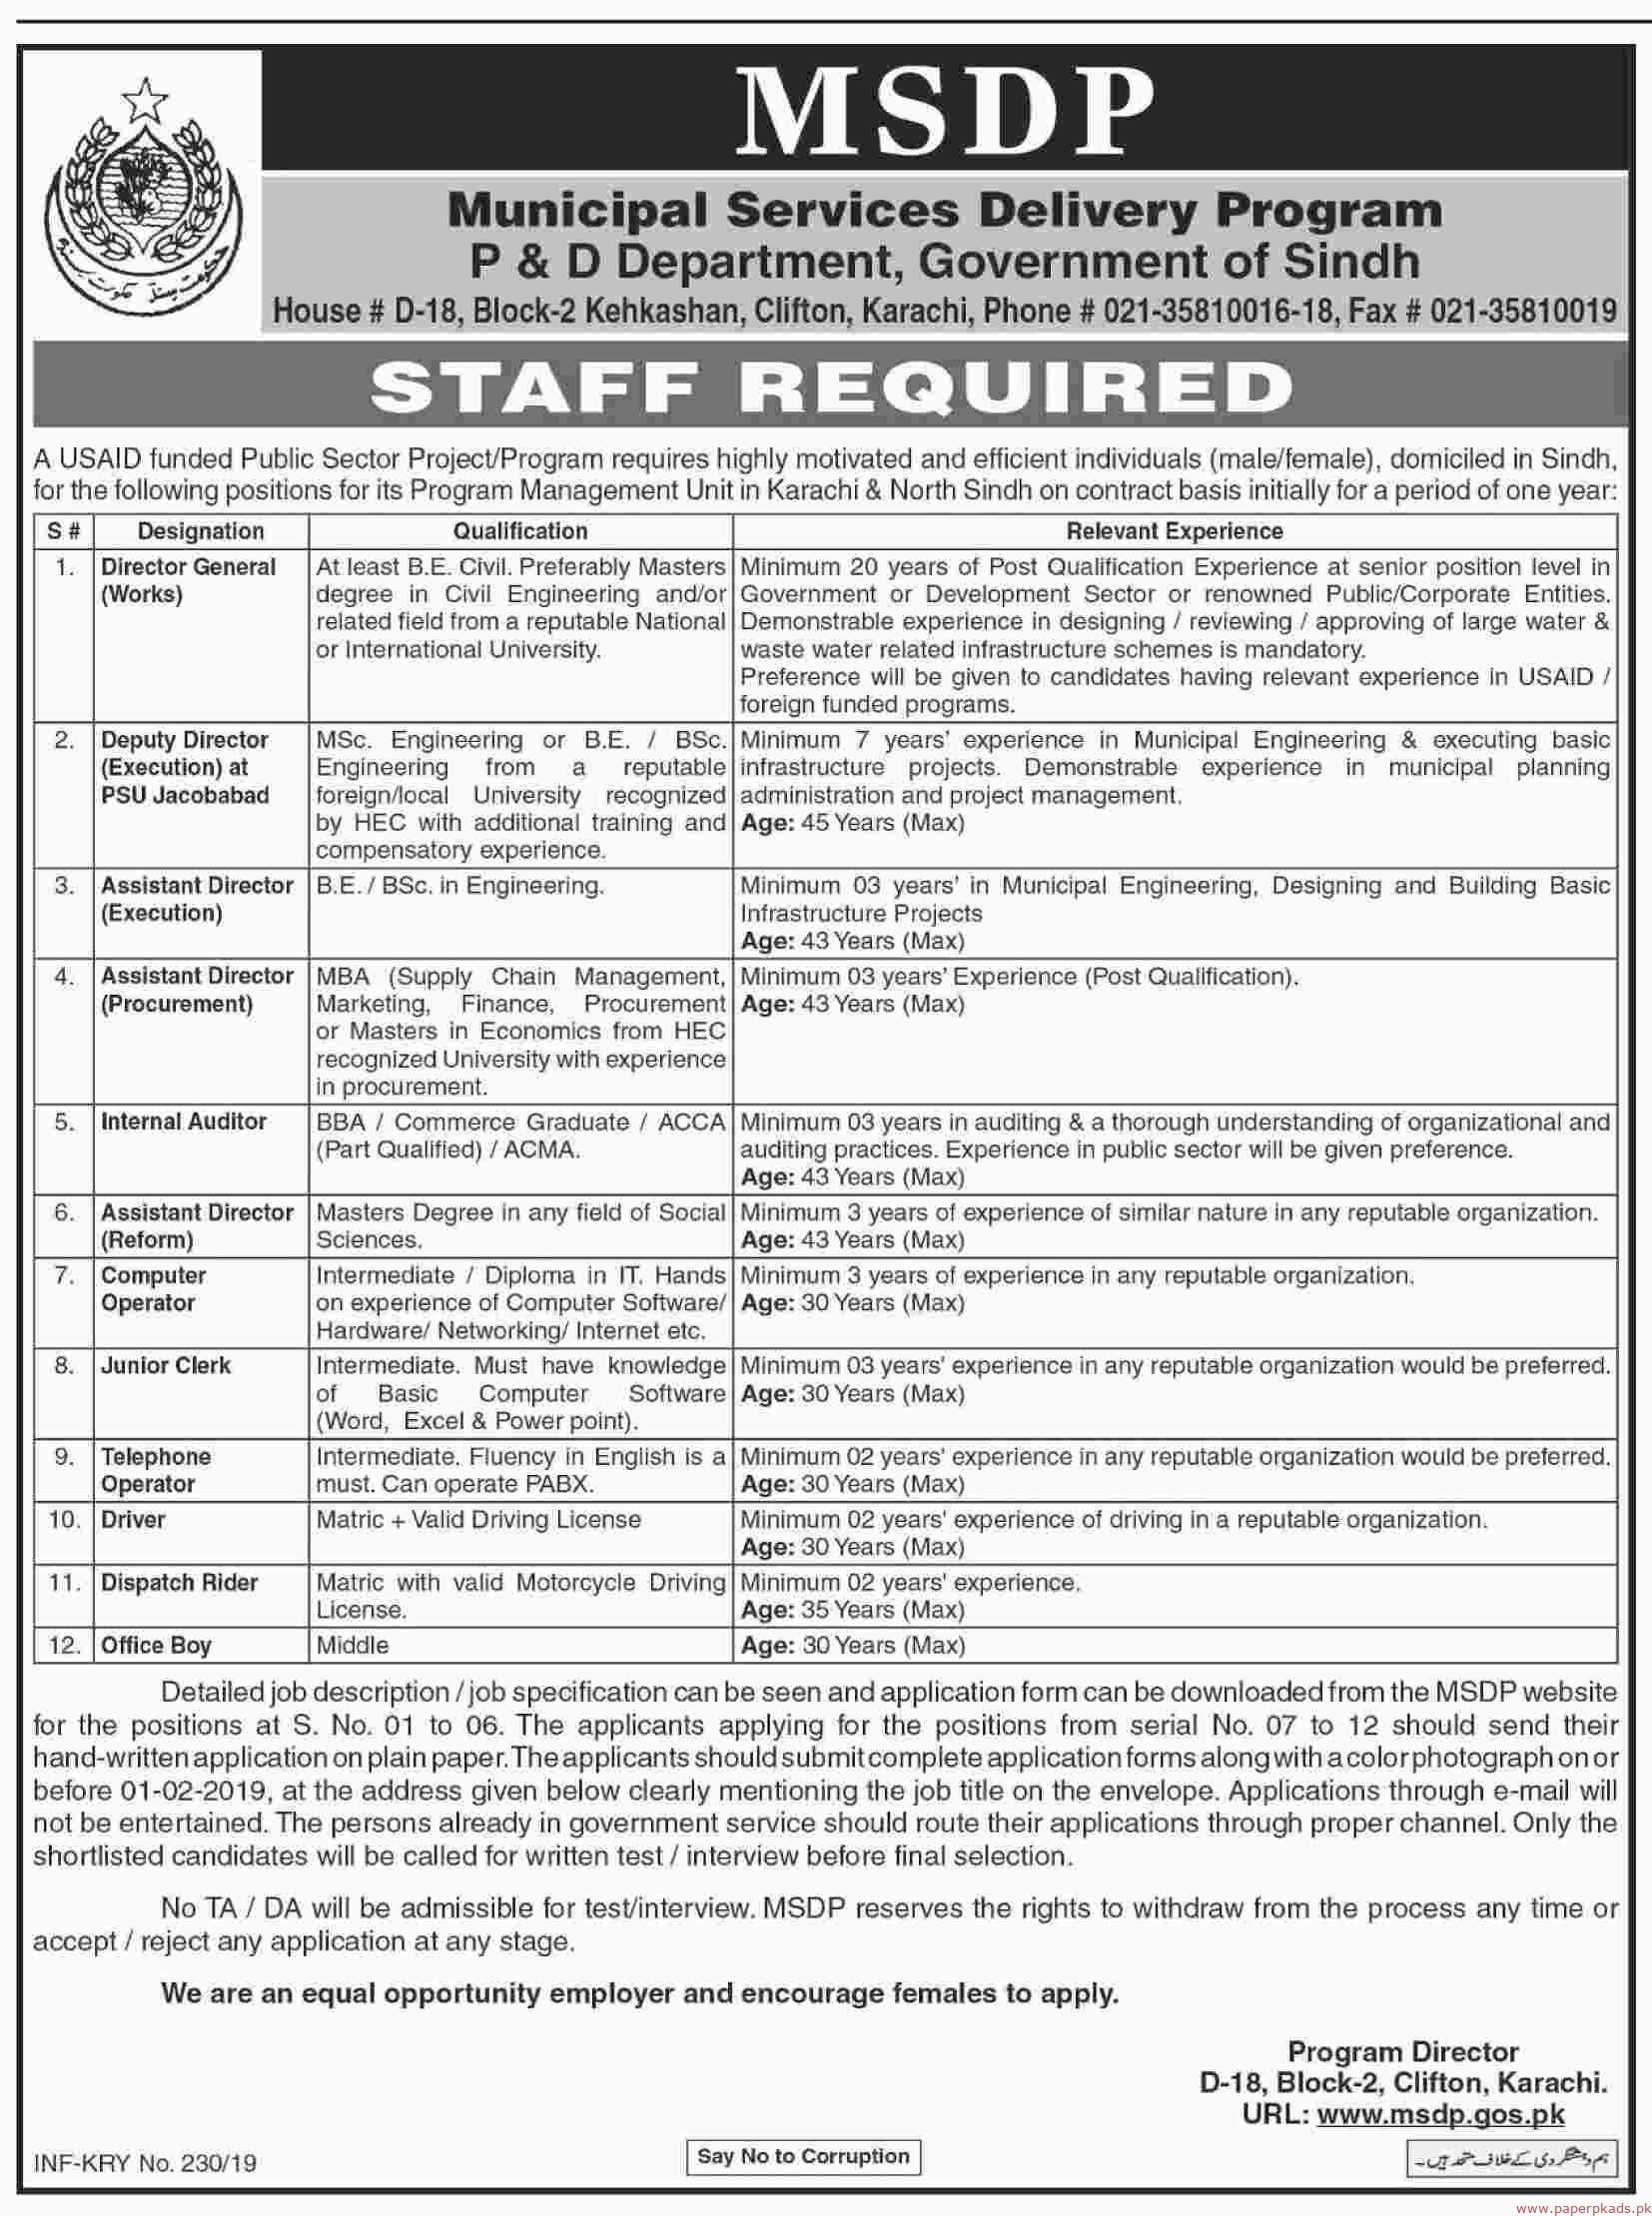 Municipal Services Delivery Program (MSDP) Jobs 2019 Latest